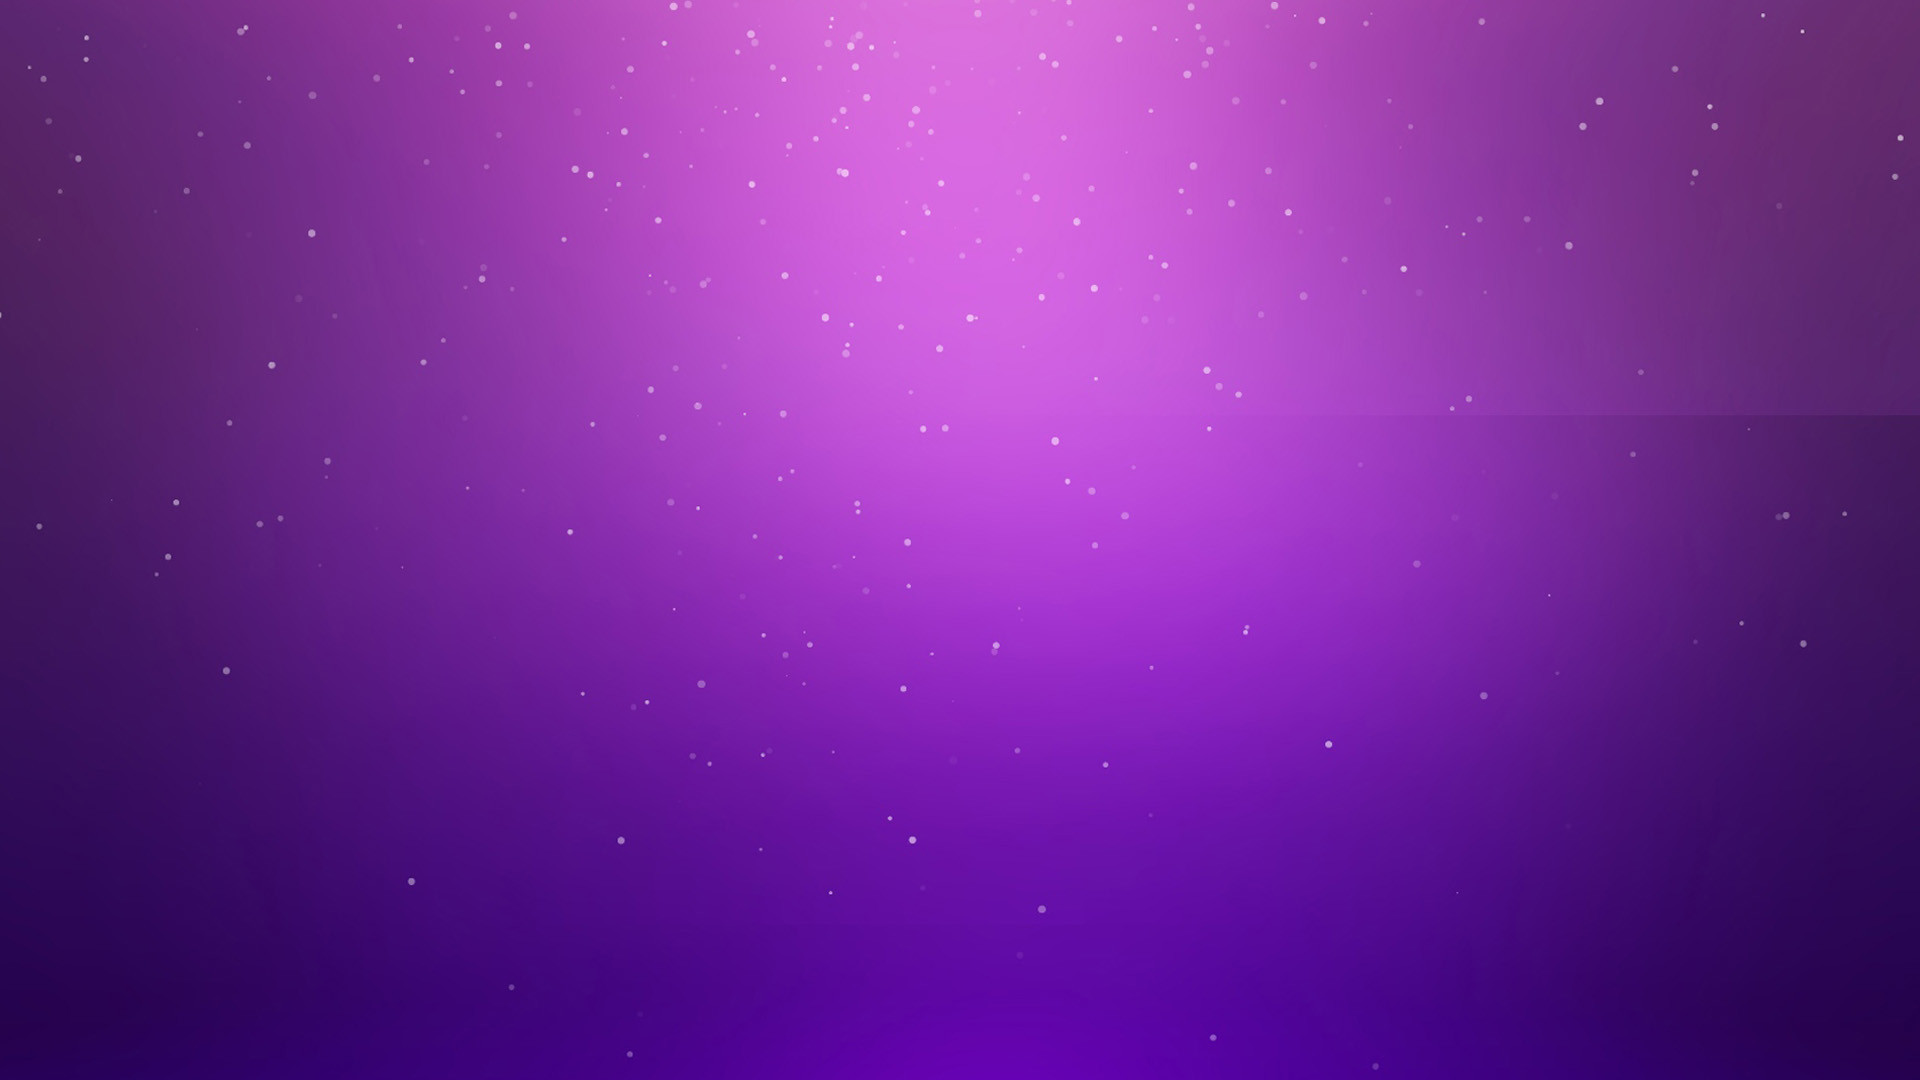 Simple Purple Wallpapers, Green Backgrounds, Pictures and images